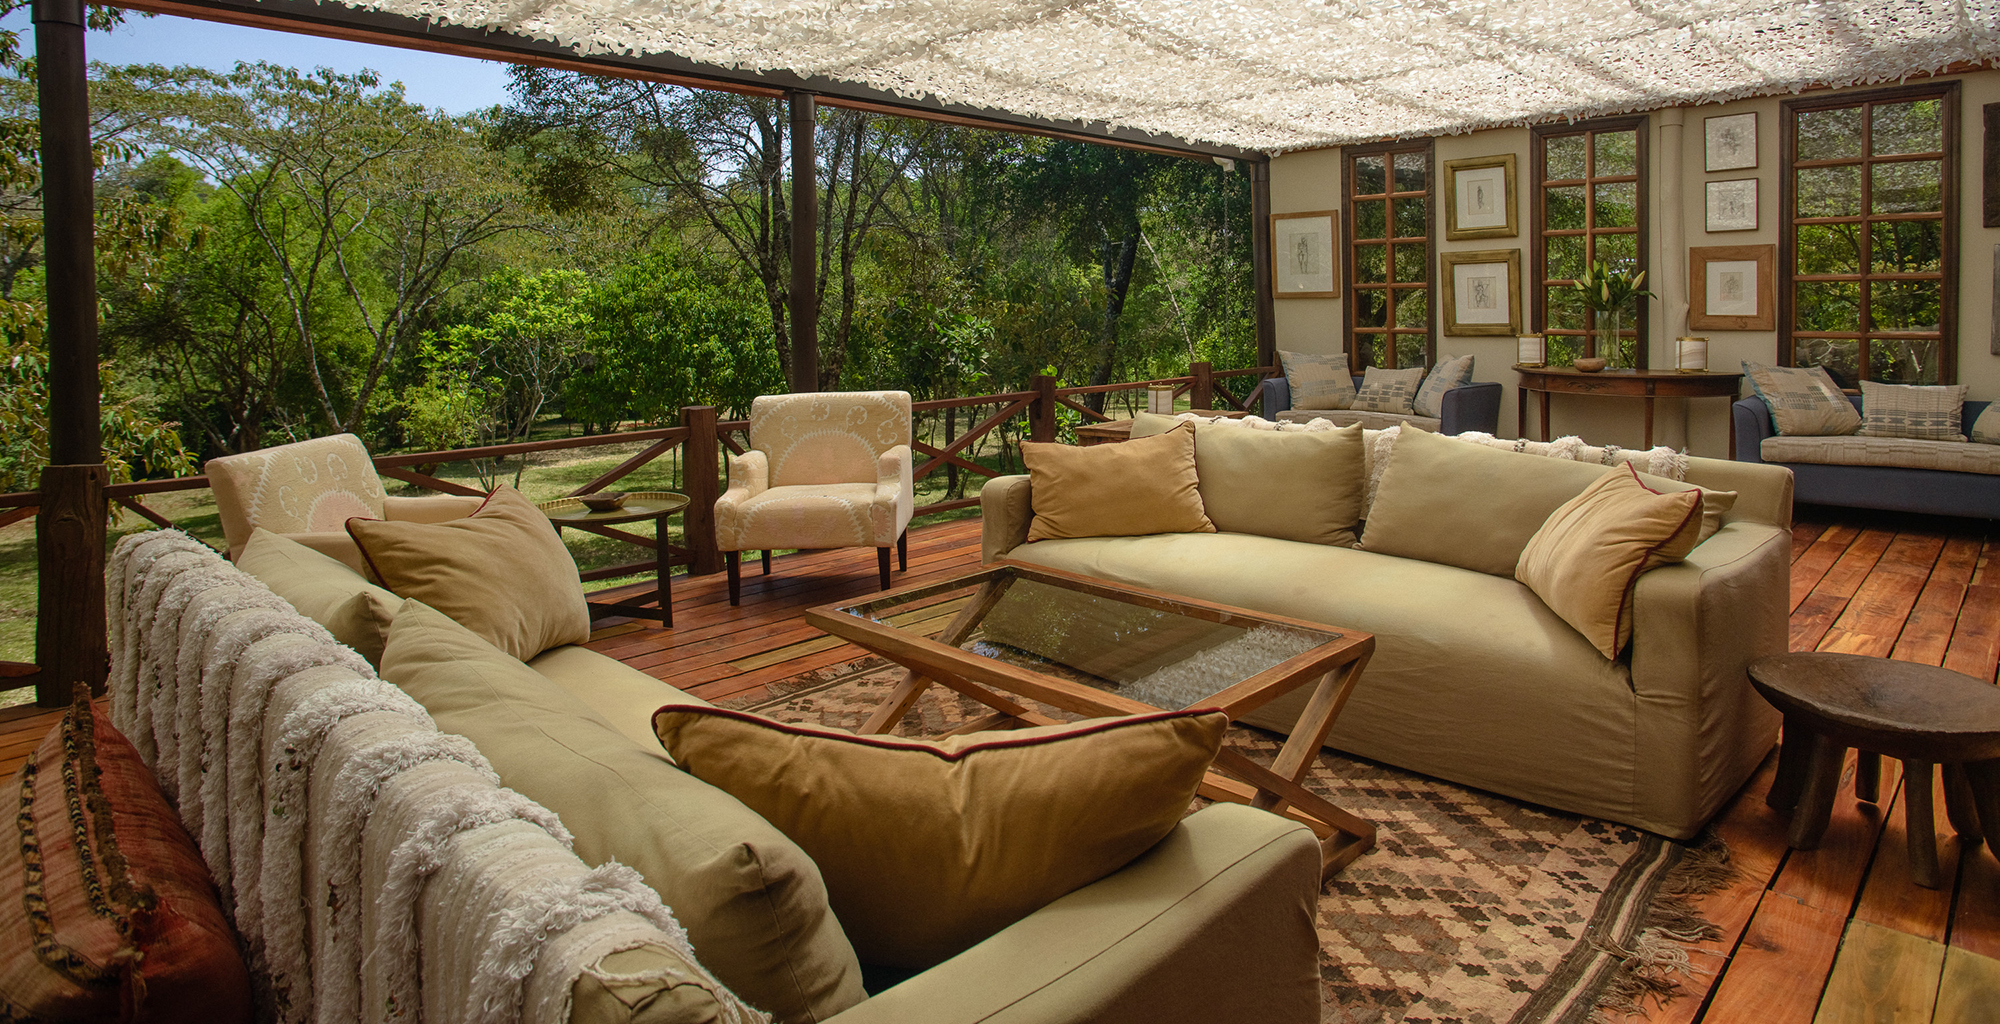 Kenya-One-Forty-Eight-Veranda